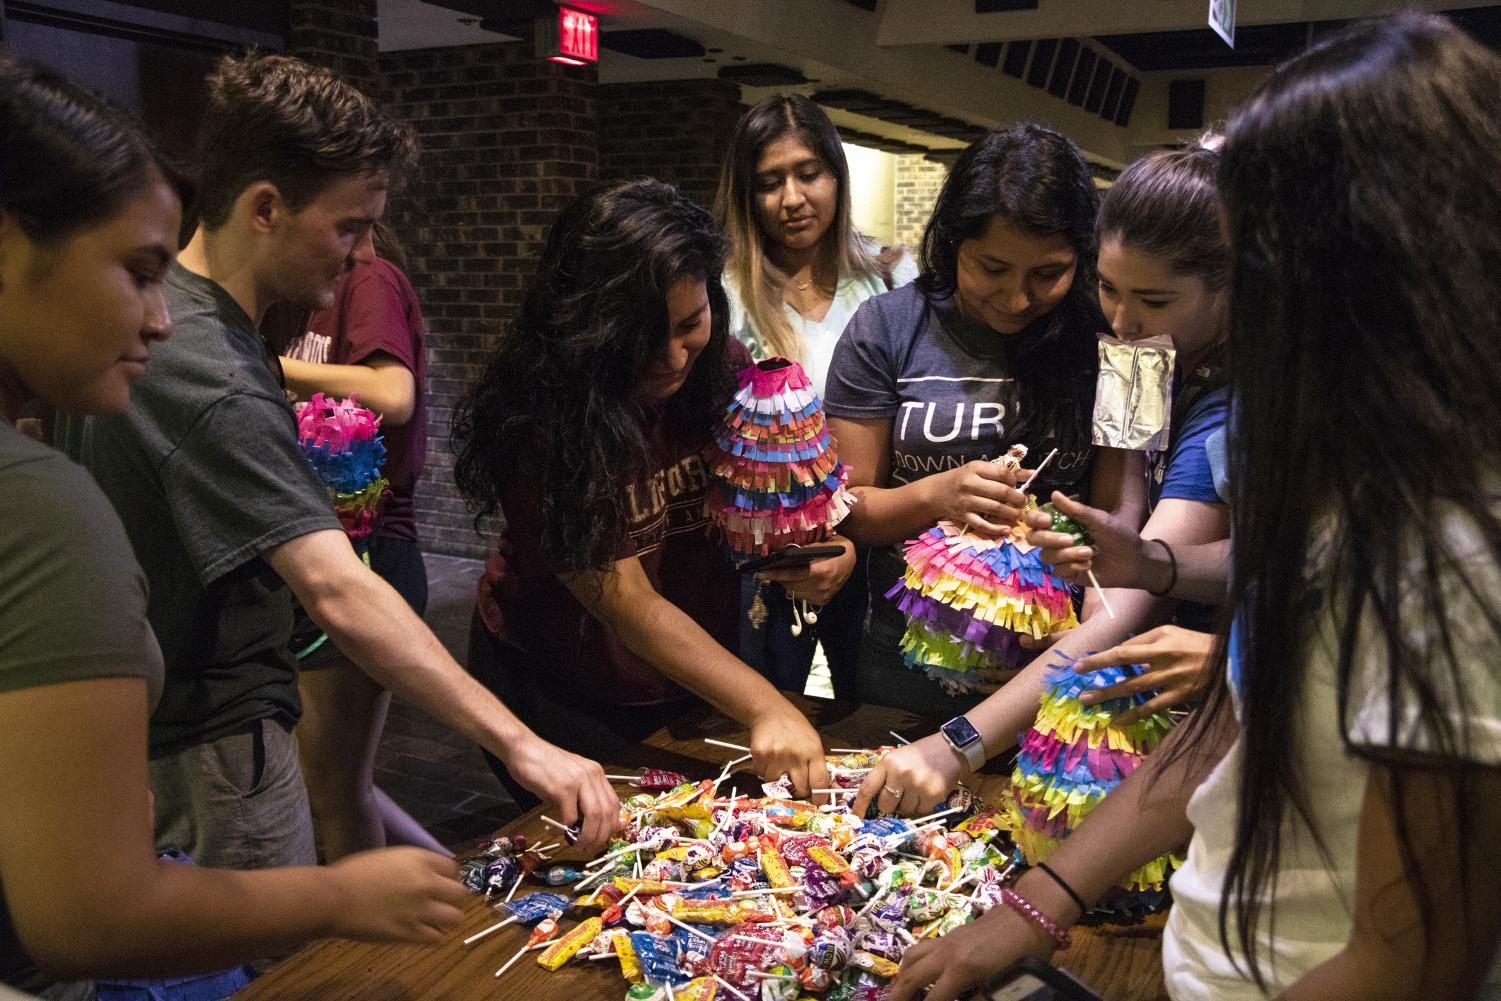 SIU+students+grab+candy+from+a+pile+to+put+in+pinatas+they+made+at+the+Student+Center+Craft+Shop+during+day+two+of+the+pinata+event+for+Hispanic+Latino+Heritage+Month%2C+Friday%2C+Oct.+5%2C+2018.+%E2%80%9CYou+fill+%5Bthe+pinata%5D+with+good+stuff+because+that%E2%80%99s+things+that+you+want+in+life%2C%E2%80%9D+Celeste+Orozco%2C+a+junior+studying+forestry%2C+said.+%E2%80%9CIt+is+normally+hung+because+it+is+supposed+to+be+up+in+the+sky%2C+like+the+heavens%2C+so+you%E2%80%99re+looking+up+and+it%E2%80%99s+about+faith%2C%22+Orozco+said.+%22So%2C+just+keep+going+and+eventually+when+you+break+through+all+the+barriers%2C+good+things+will+come+of+it+and+that+is+the+candy+part+of+it.%E2%80%9D+%28Allie+Tiller+%7C+%40allietiller_de%29